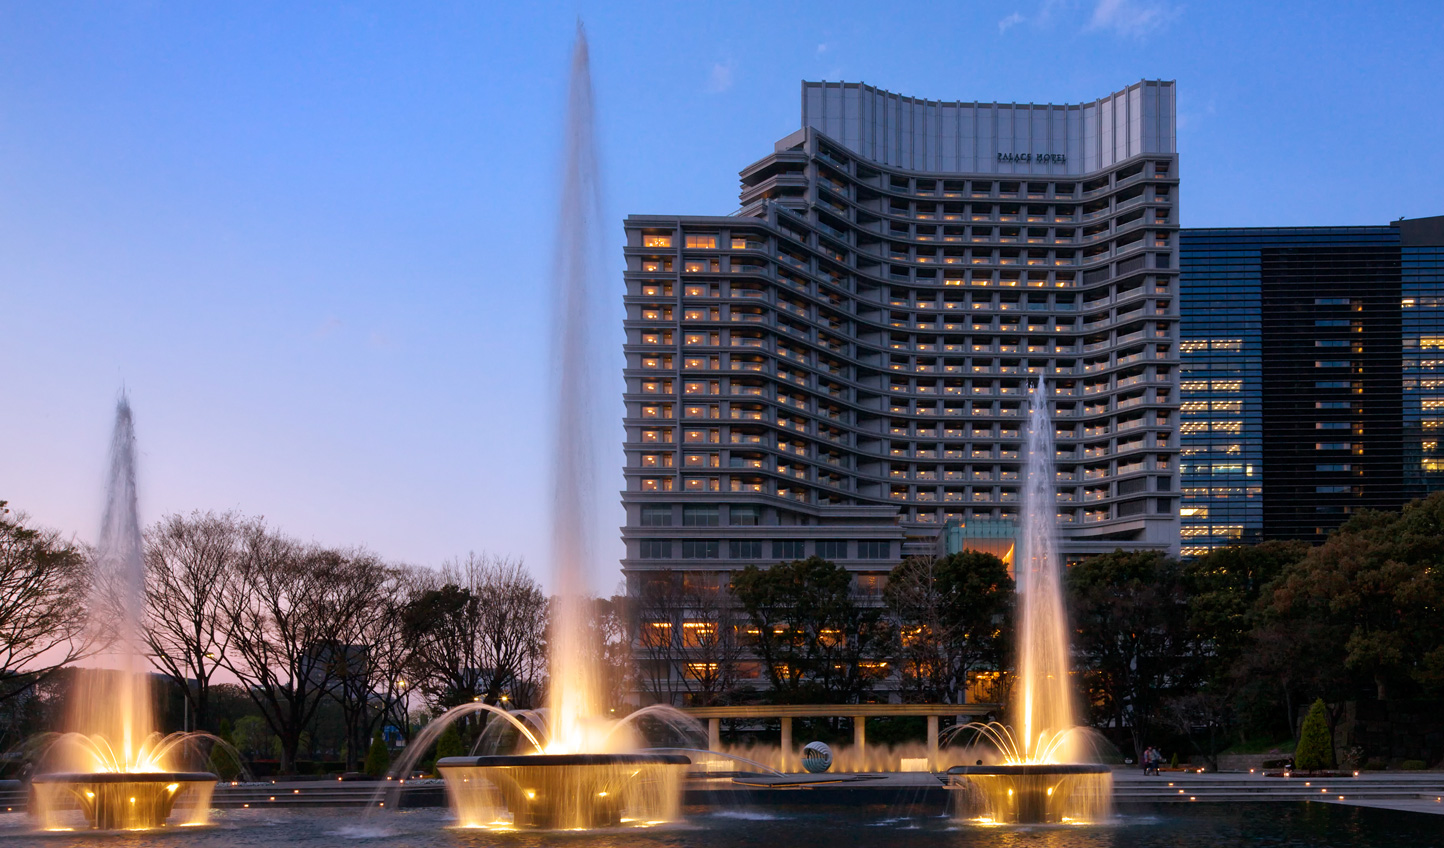 Welcome to one of Japan's finest hotels, Palace Hotel